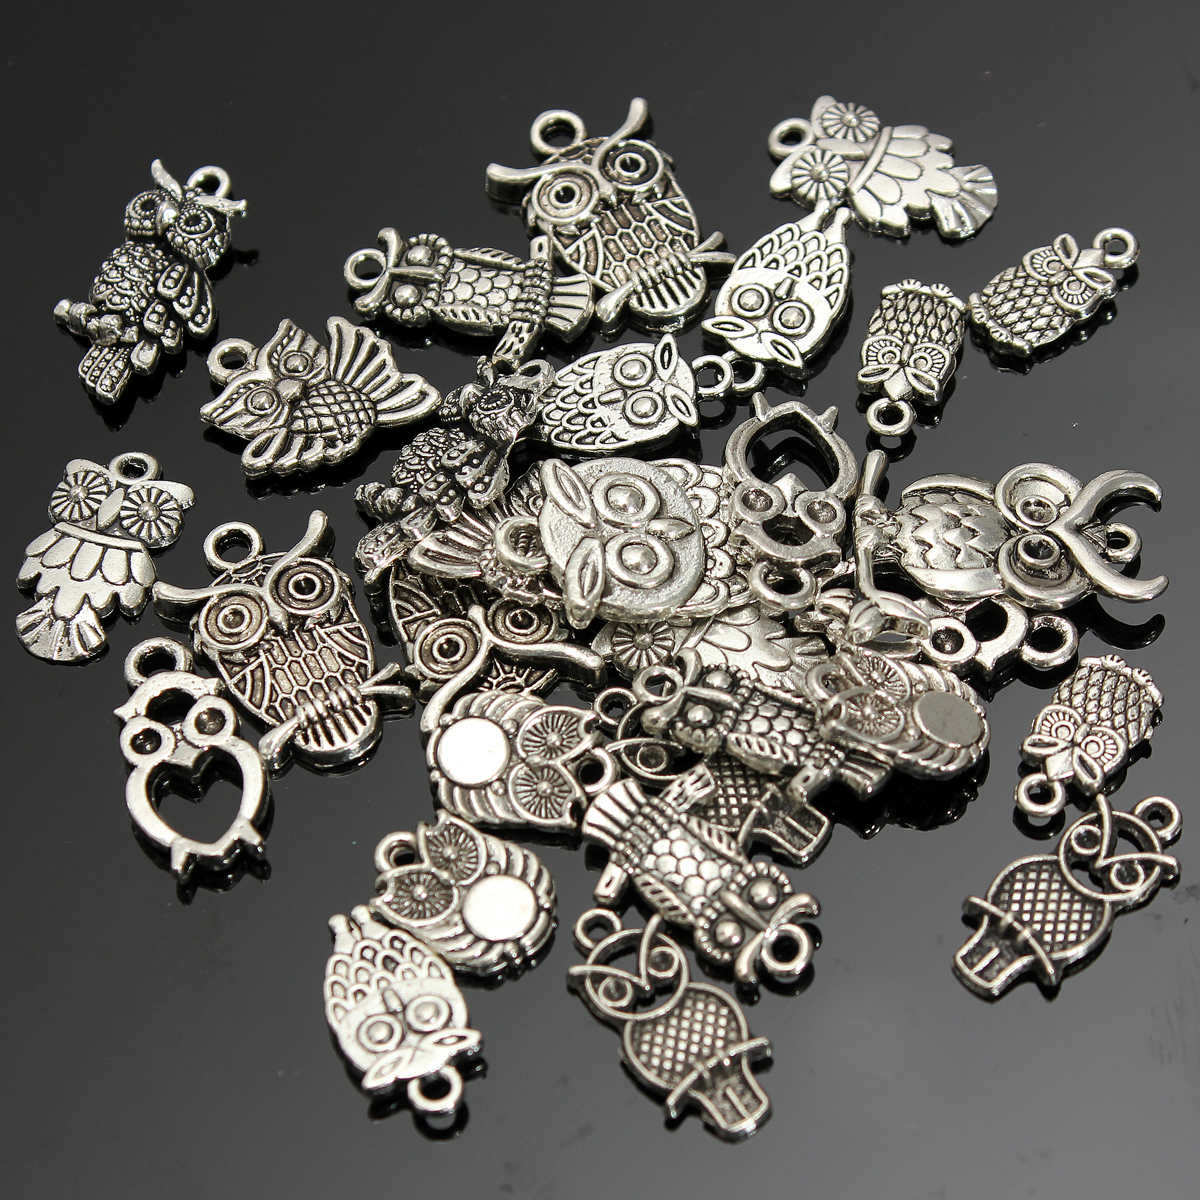 30pcs tibetan silver charm owl pendant beads wholesale. Black Bedroom Furniture Sets. Home Design Ideas